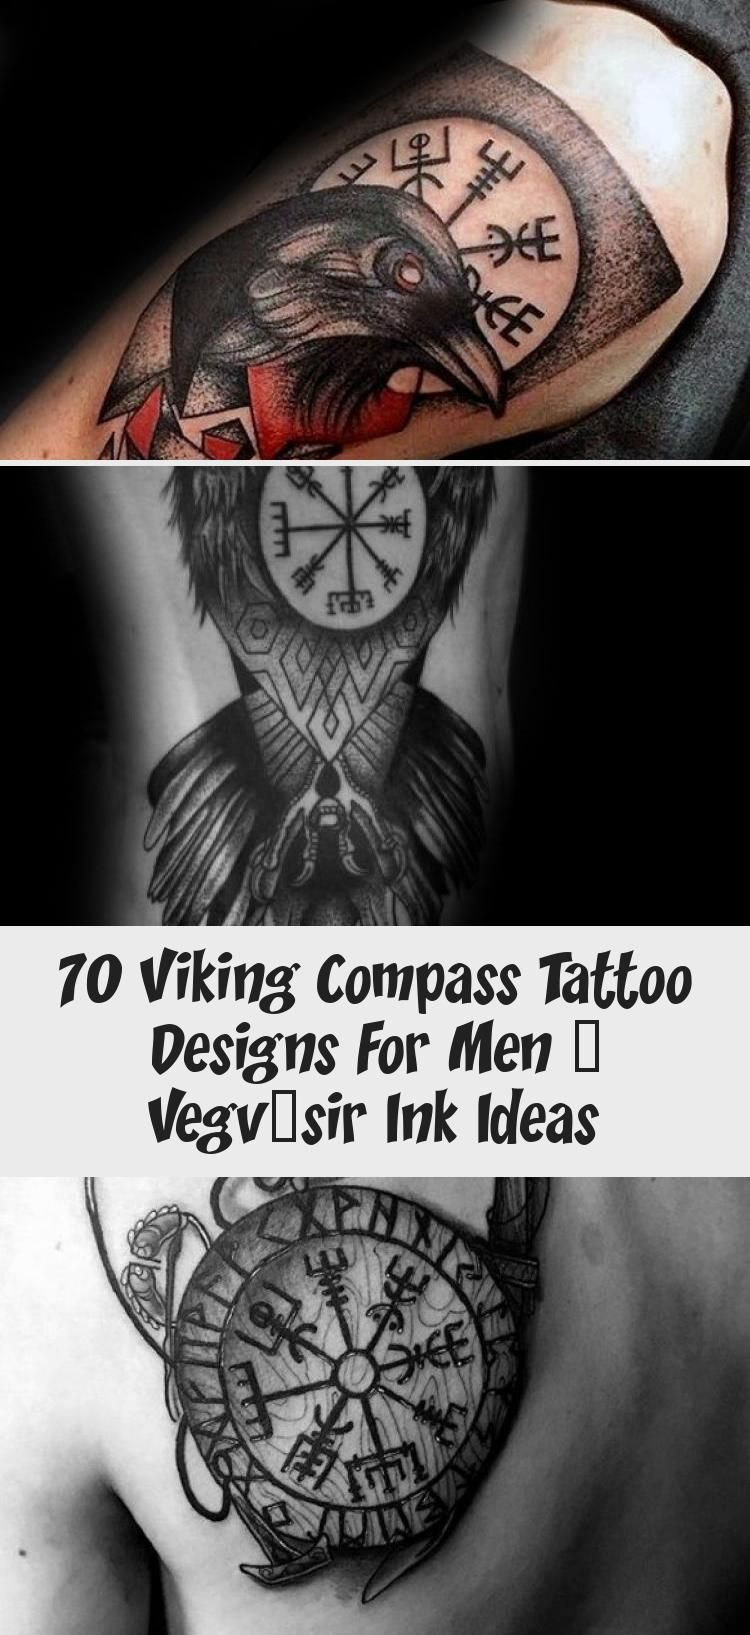 70 Viking Compass Tattoo Designs For Men – Vegvísir Ink ...